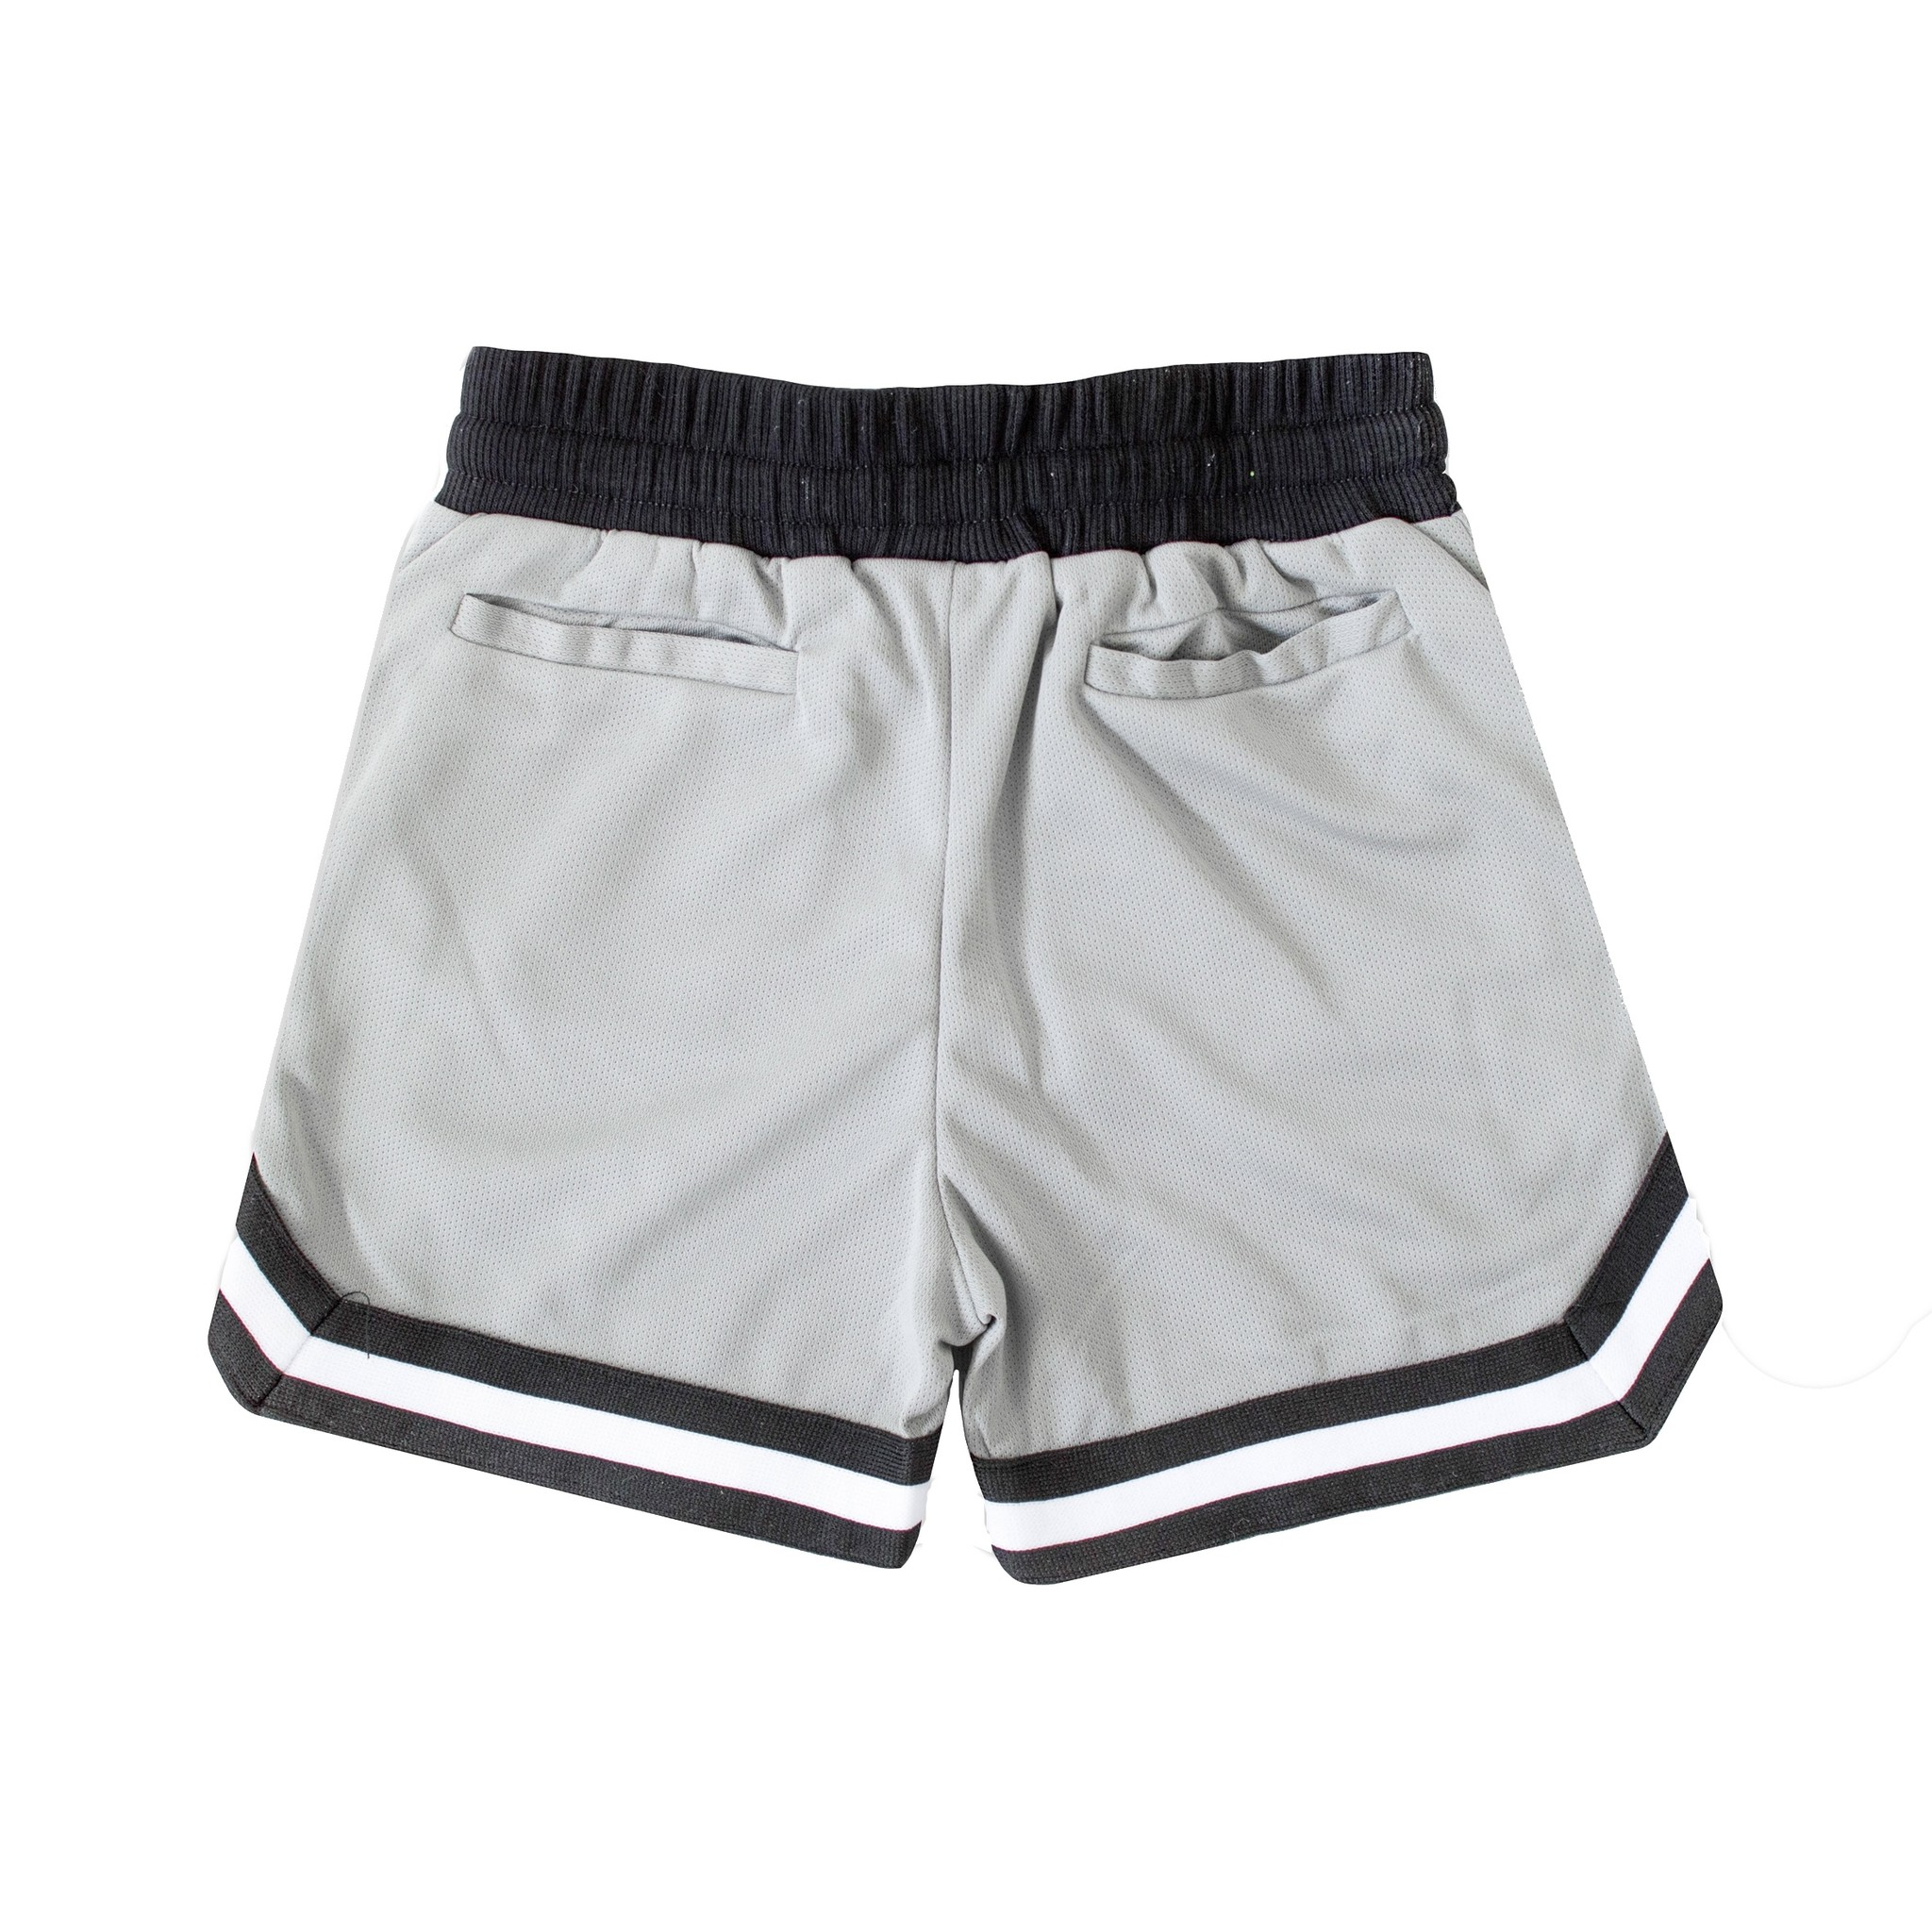 Beaubella Kids GREY BASEBALL SHORTS | GREY COMFORTABLE SHORT PANTS | BEAUBELLAKIDS